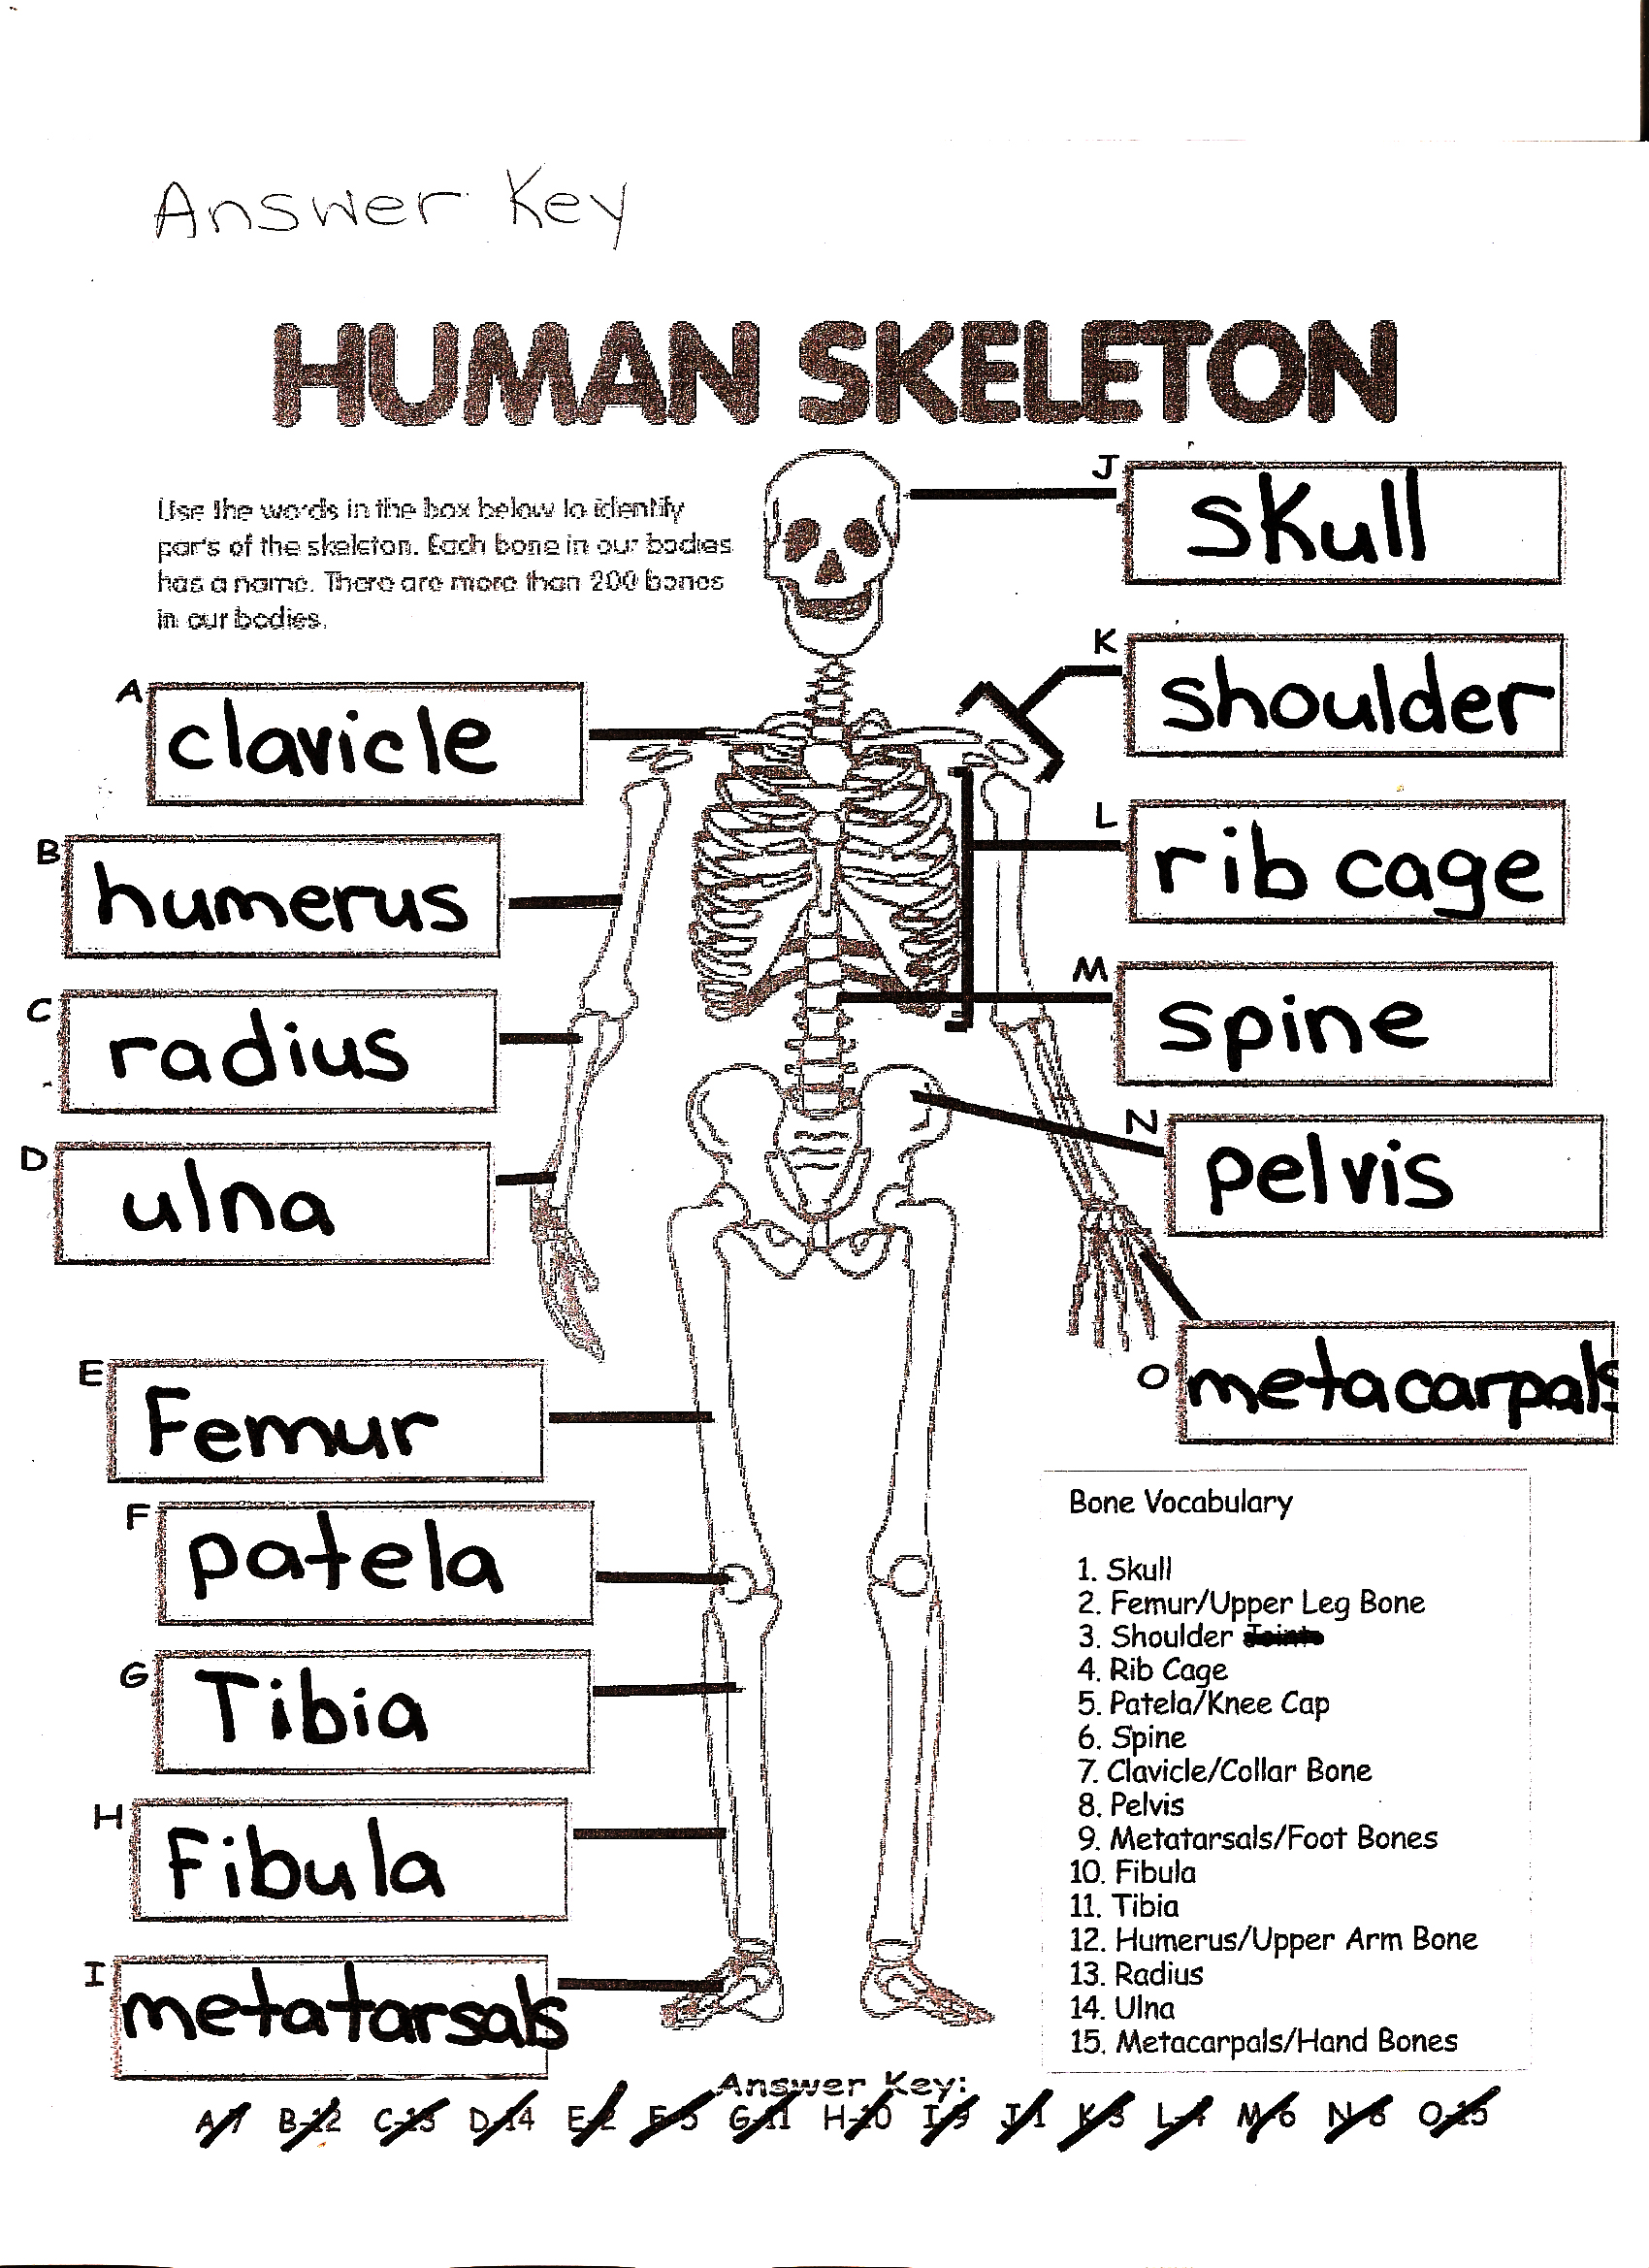 Anatomy And Physiology Coloring Workbook Answers Chapter 5